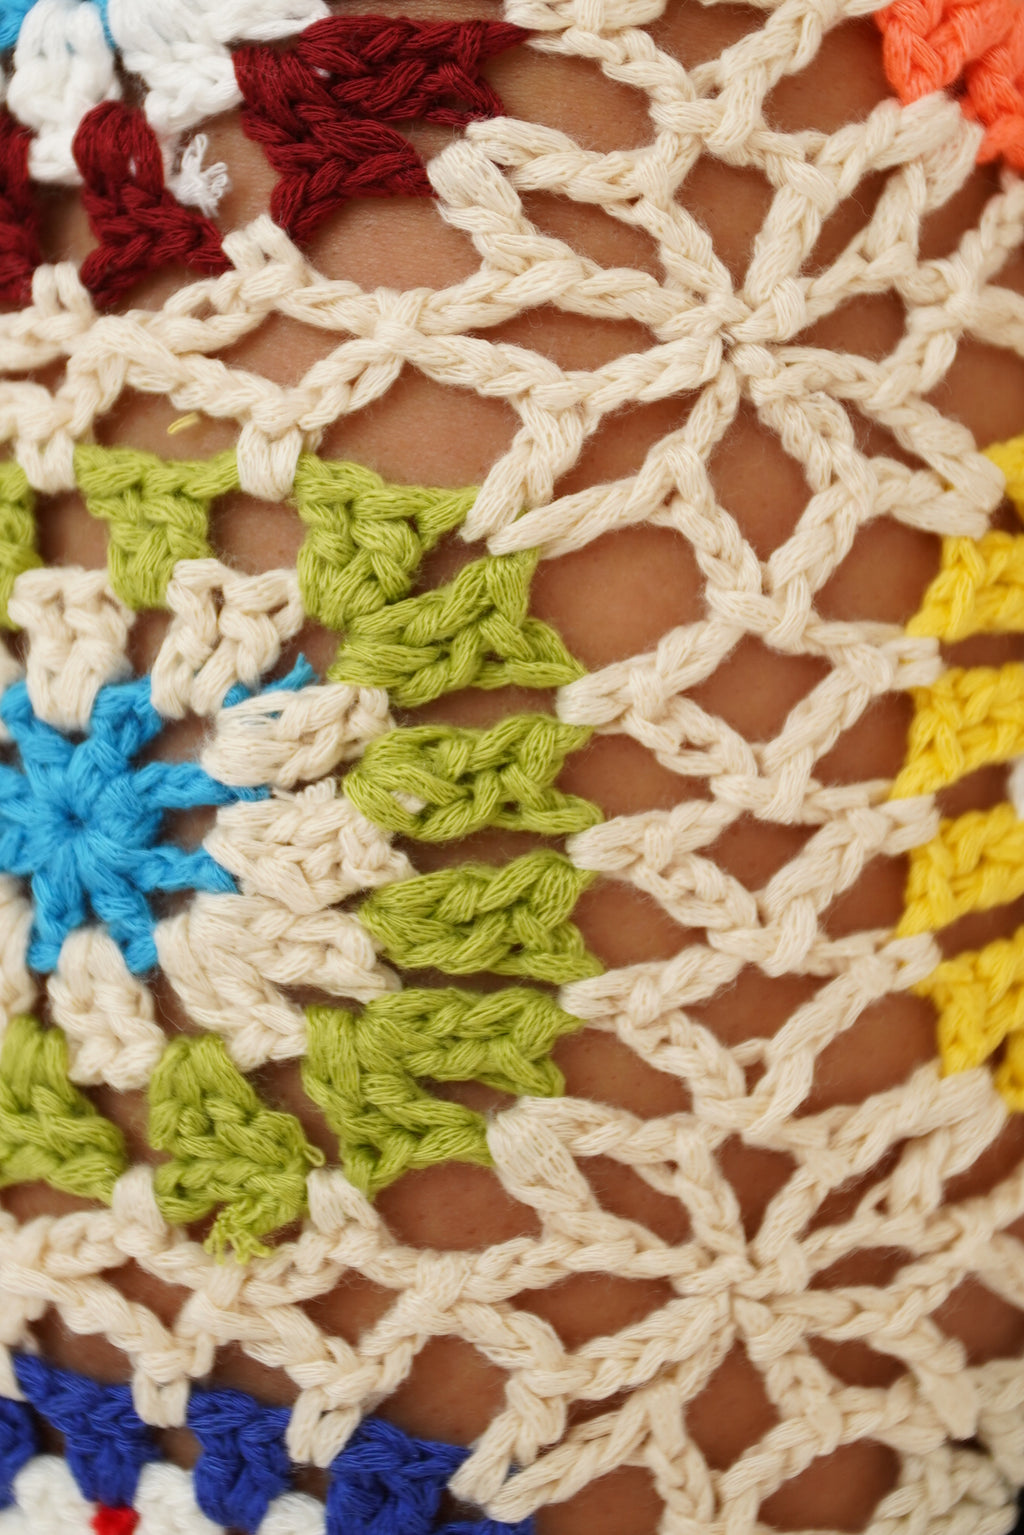 VRG GRL Wildflowers Bias Cut Maxi Dress // Floral